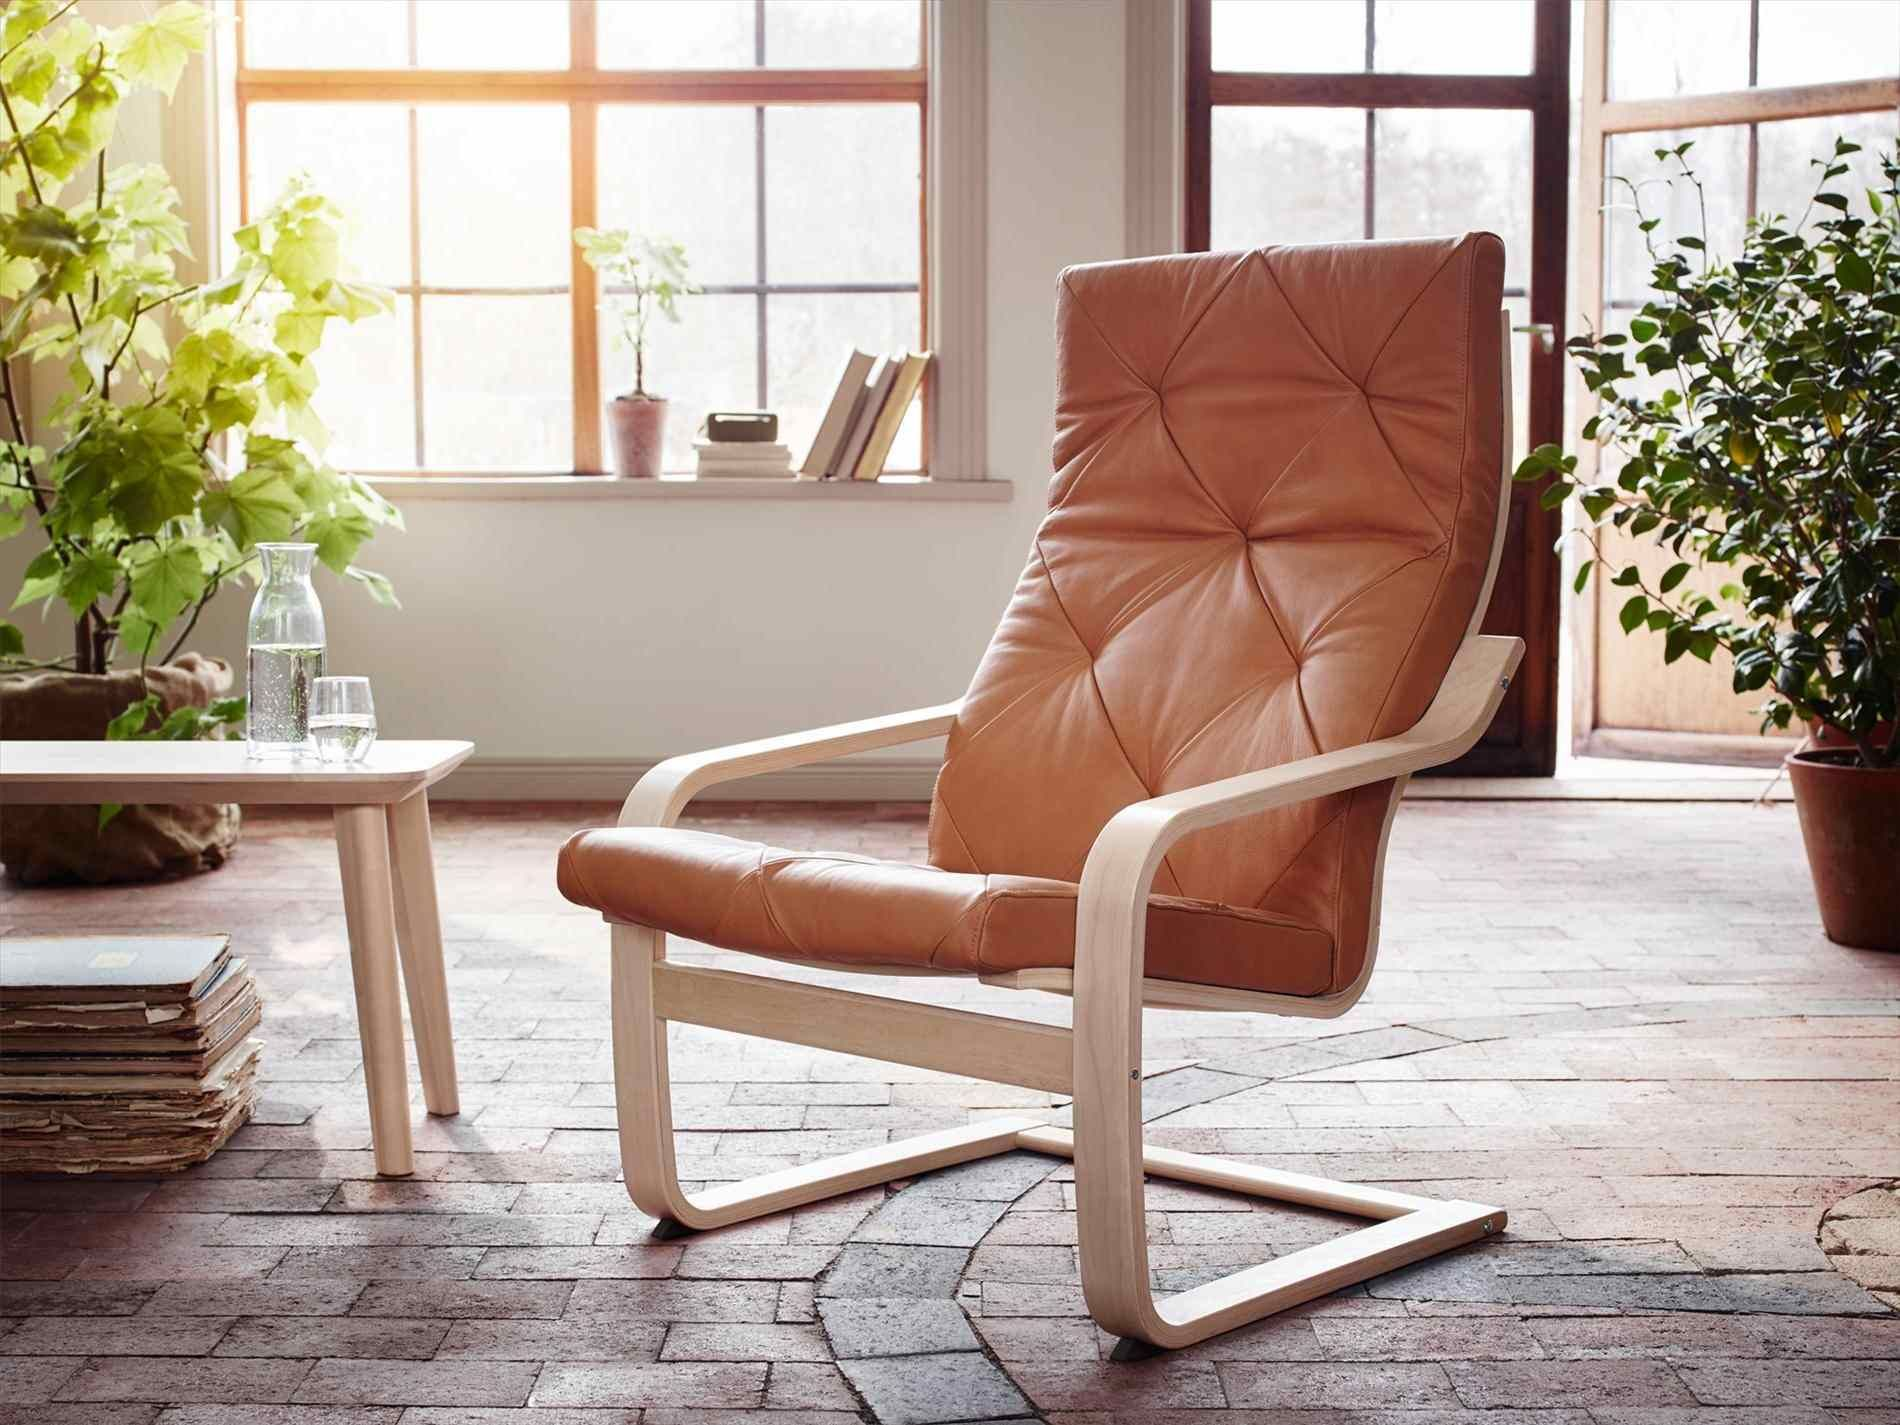 Pin By Adria Verdoorn On Furniture Inspo Ikea Poang Chair Scandinavian Style Chairs Ikea Chair